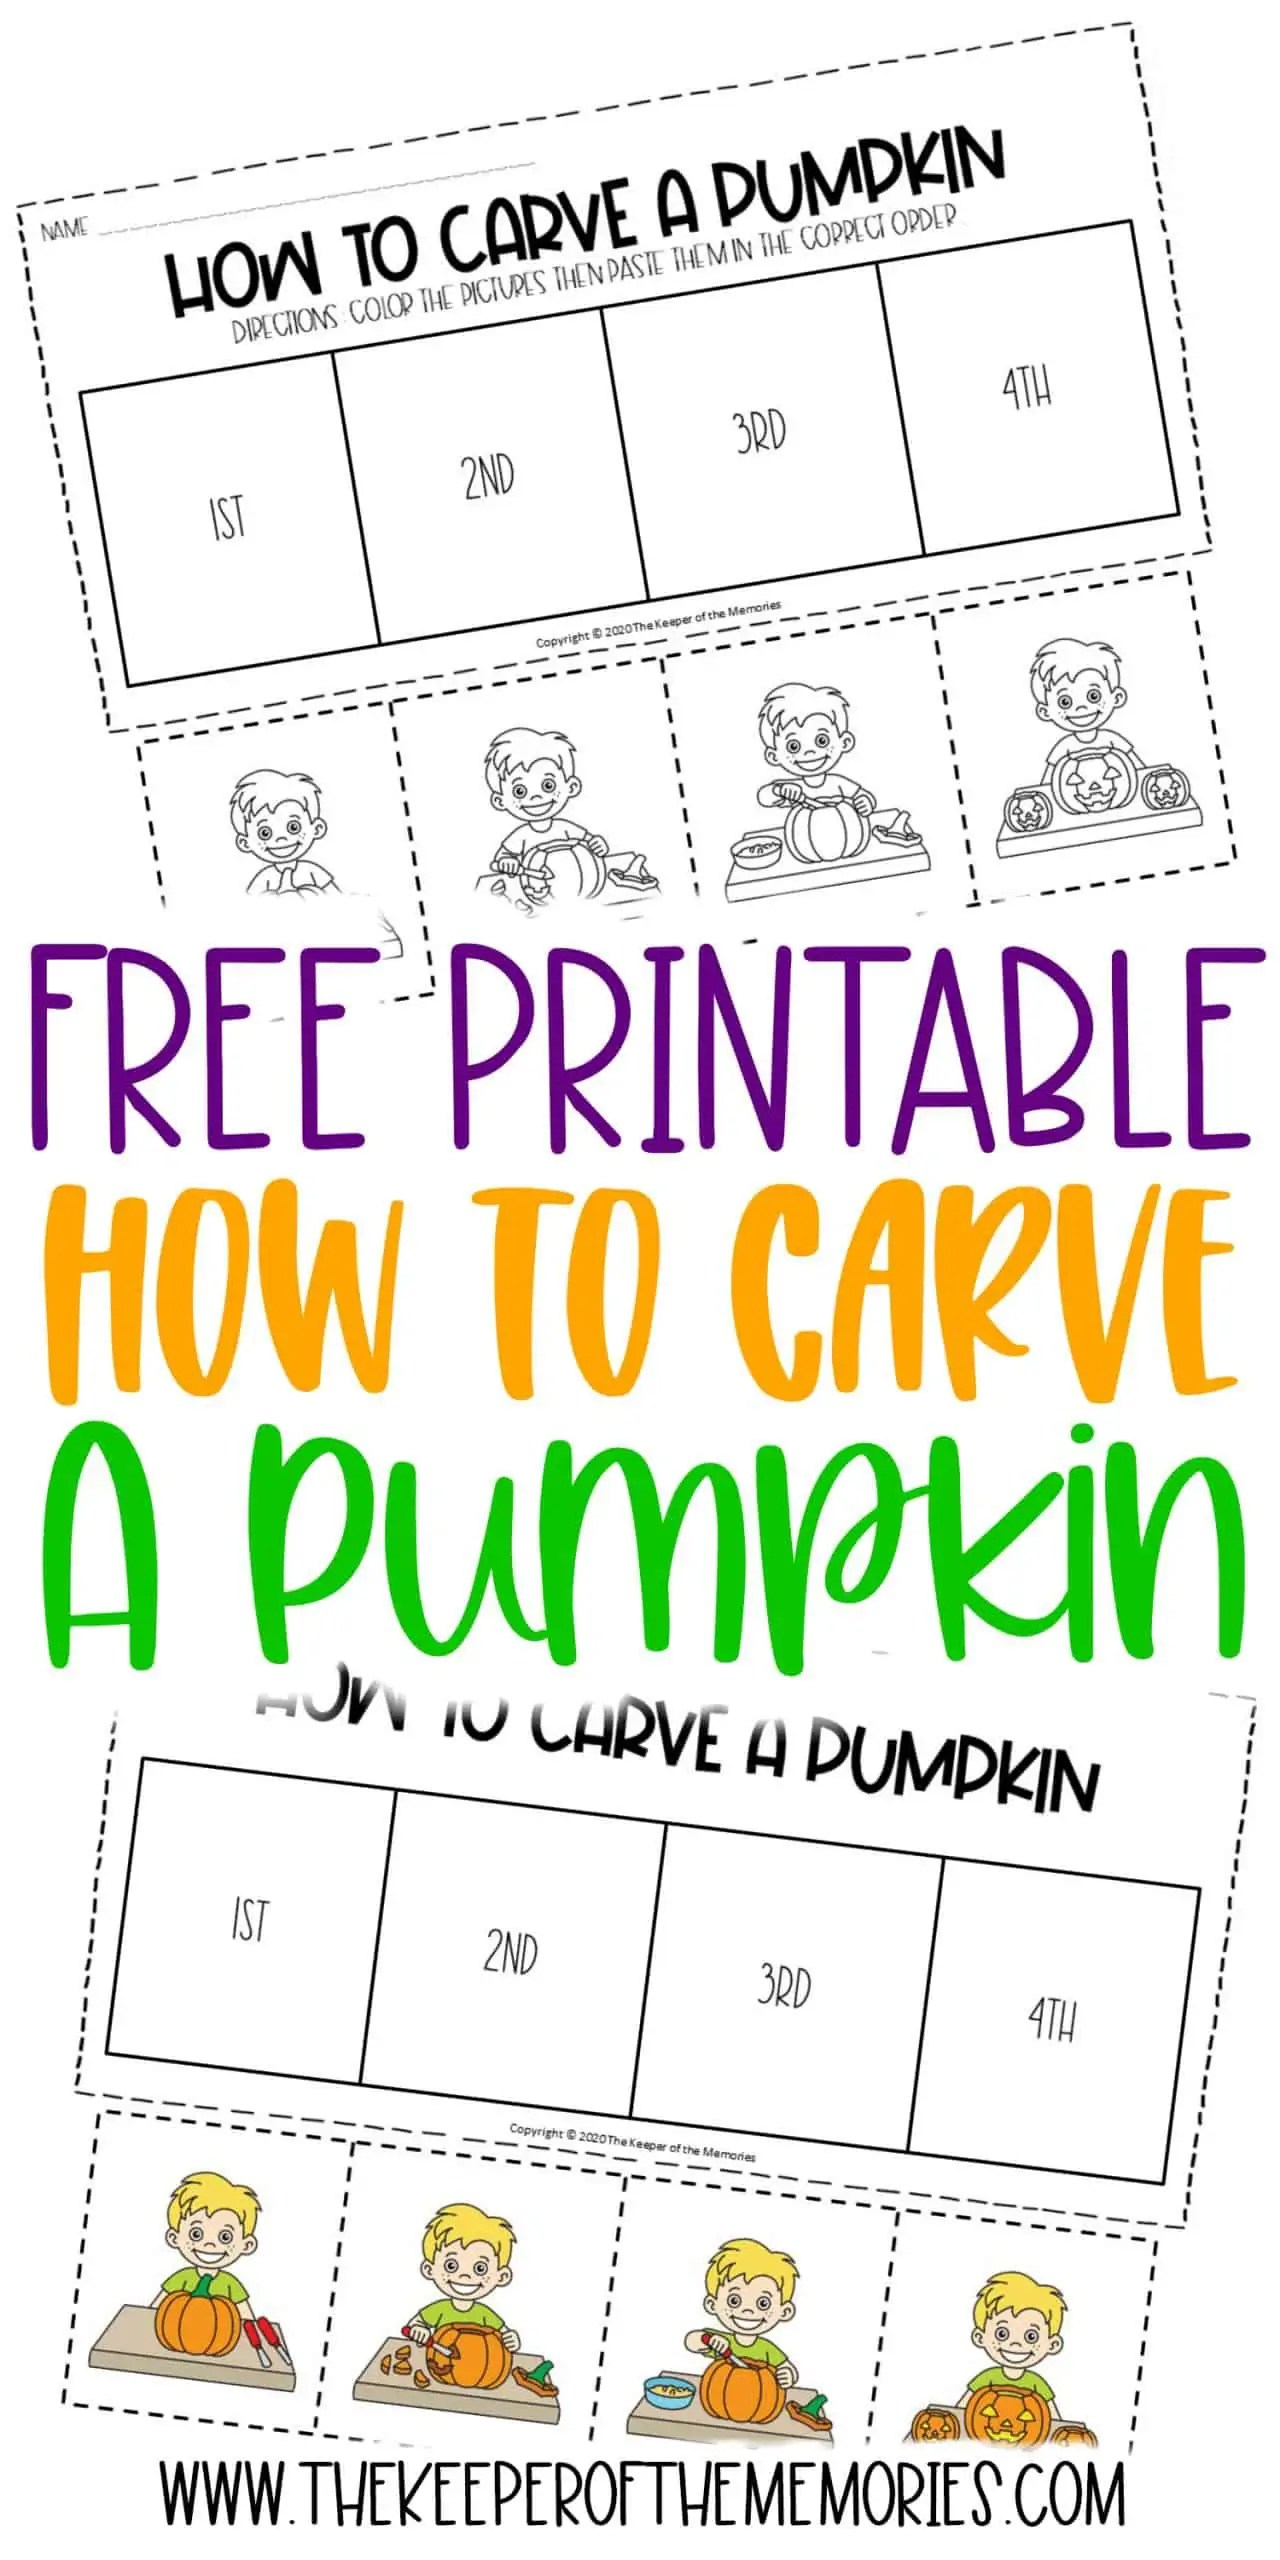 Free Printable How To Carve A Pumpkin Sequencing